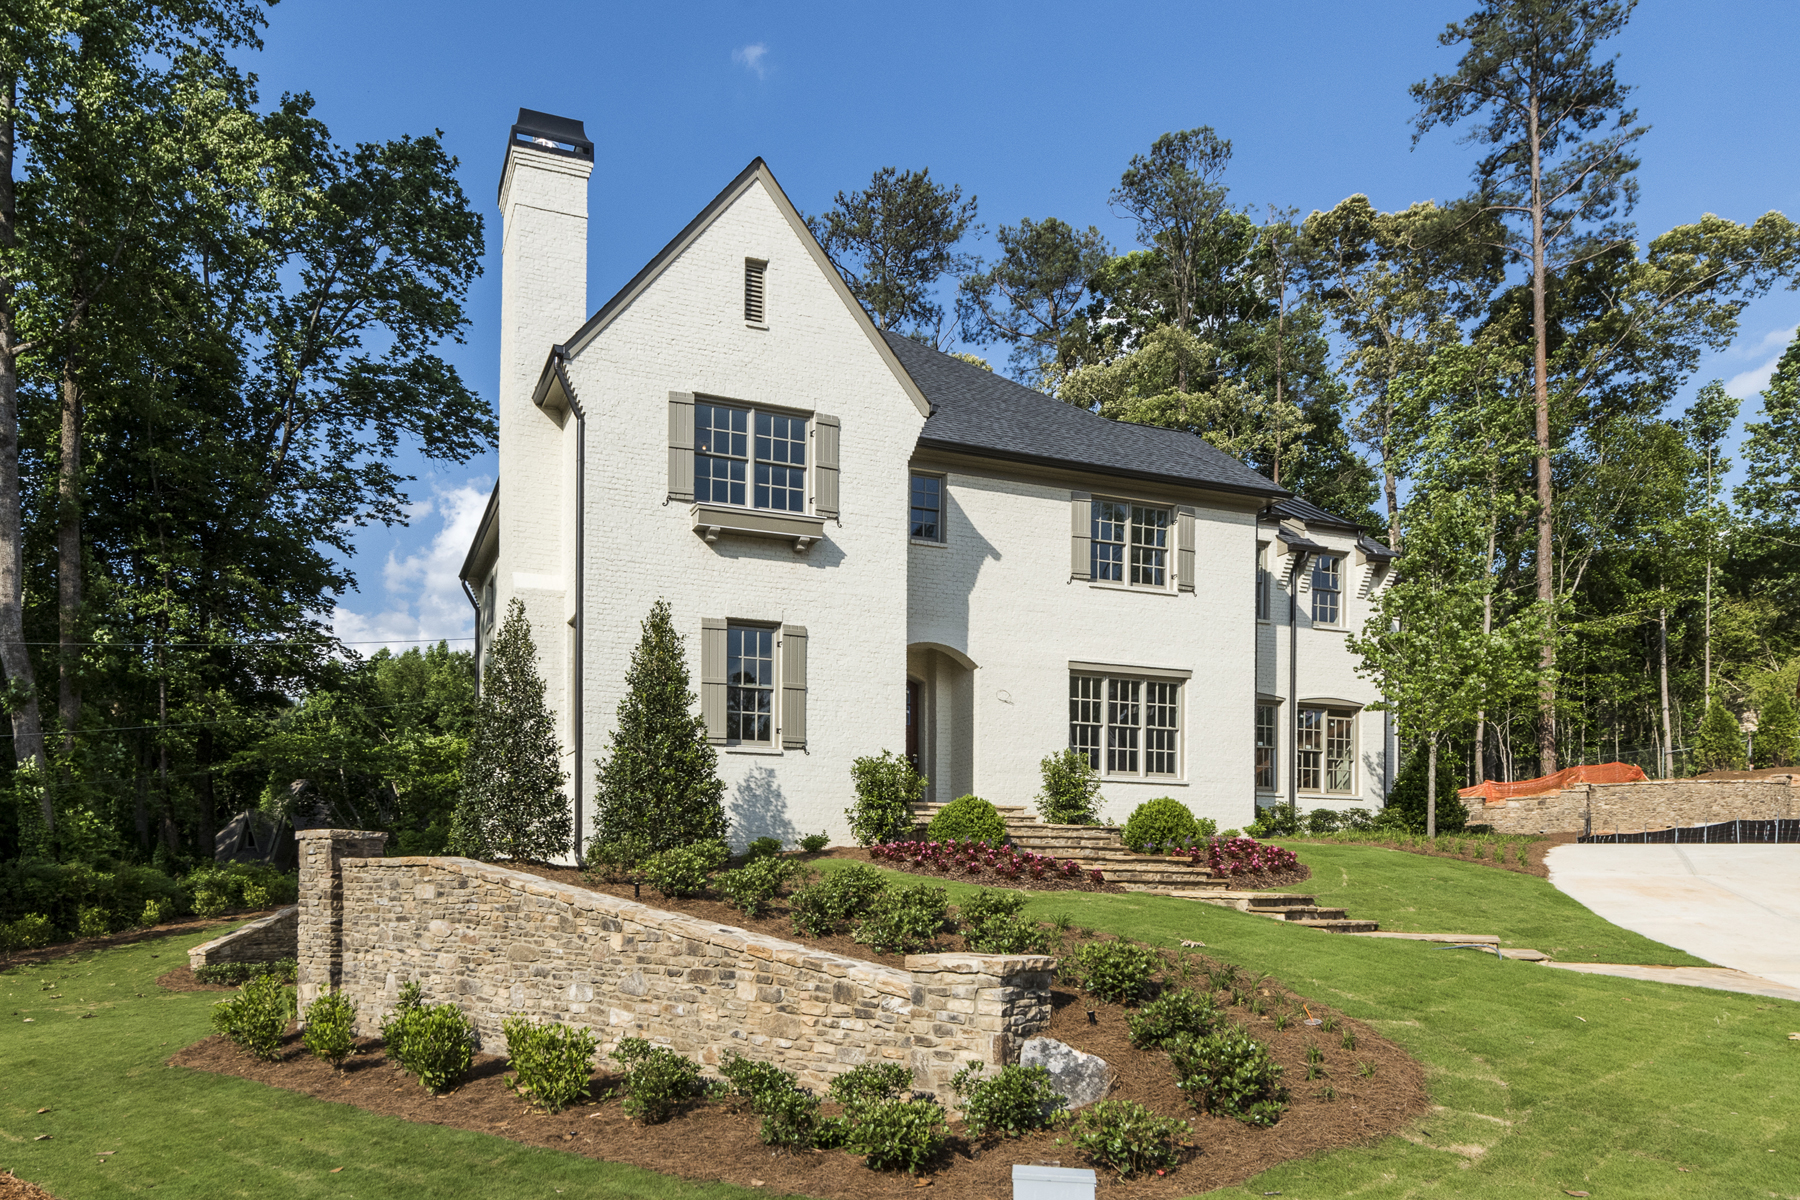 Частный односемейный дом для того Продажа на Amazing New Construction With Walkout Backyard And Attention To Detail 512 Ivy Preserve Court Atlanta, Джорджия 30342 Соединенные Штаты